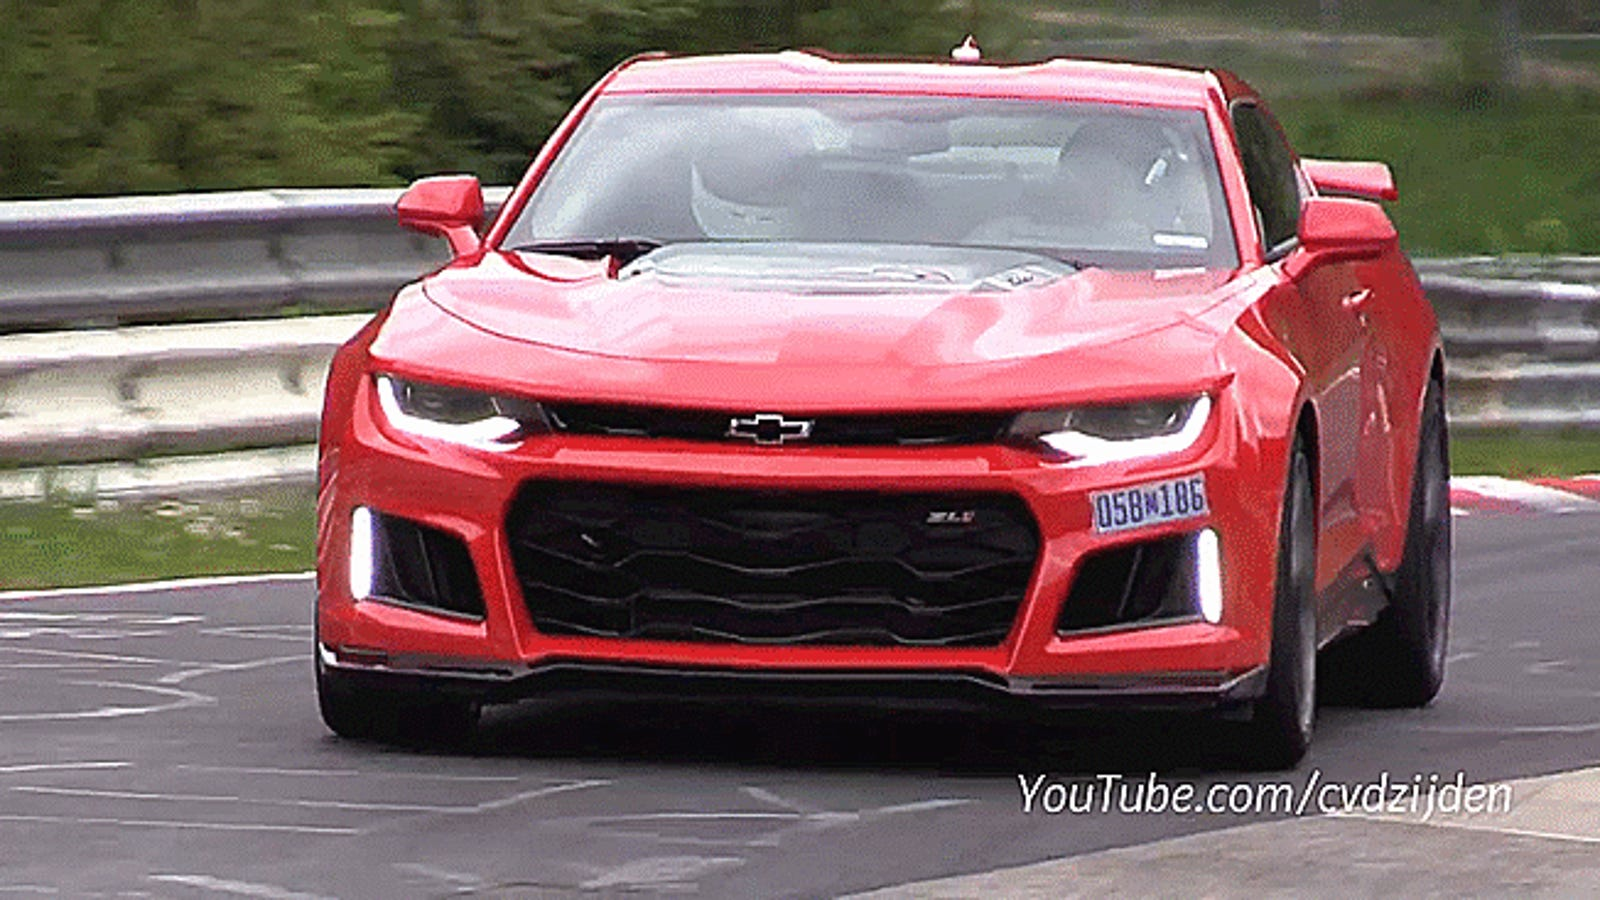 Melt Your Brain To The Sound Of The 2017 Camaro Zl1 On The